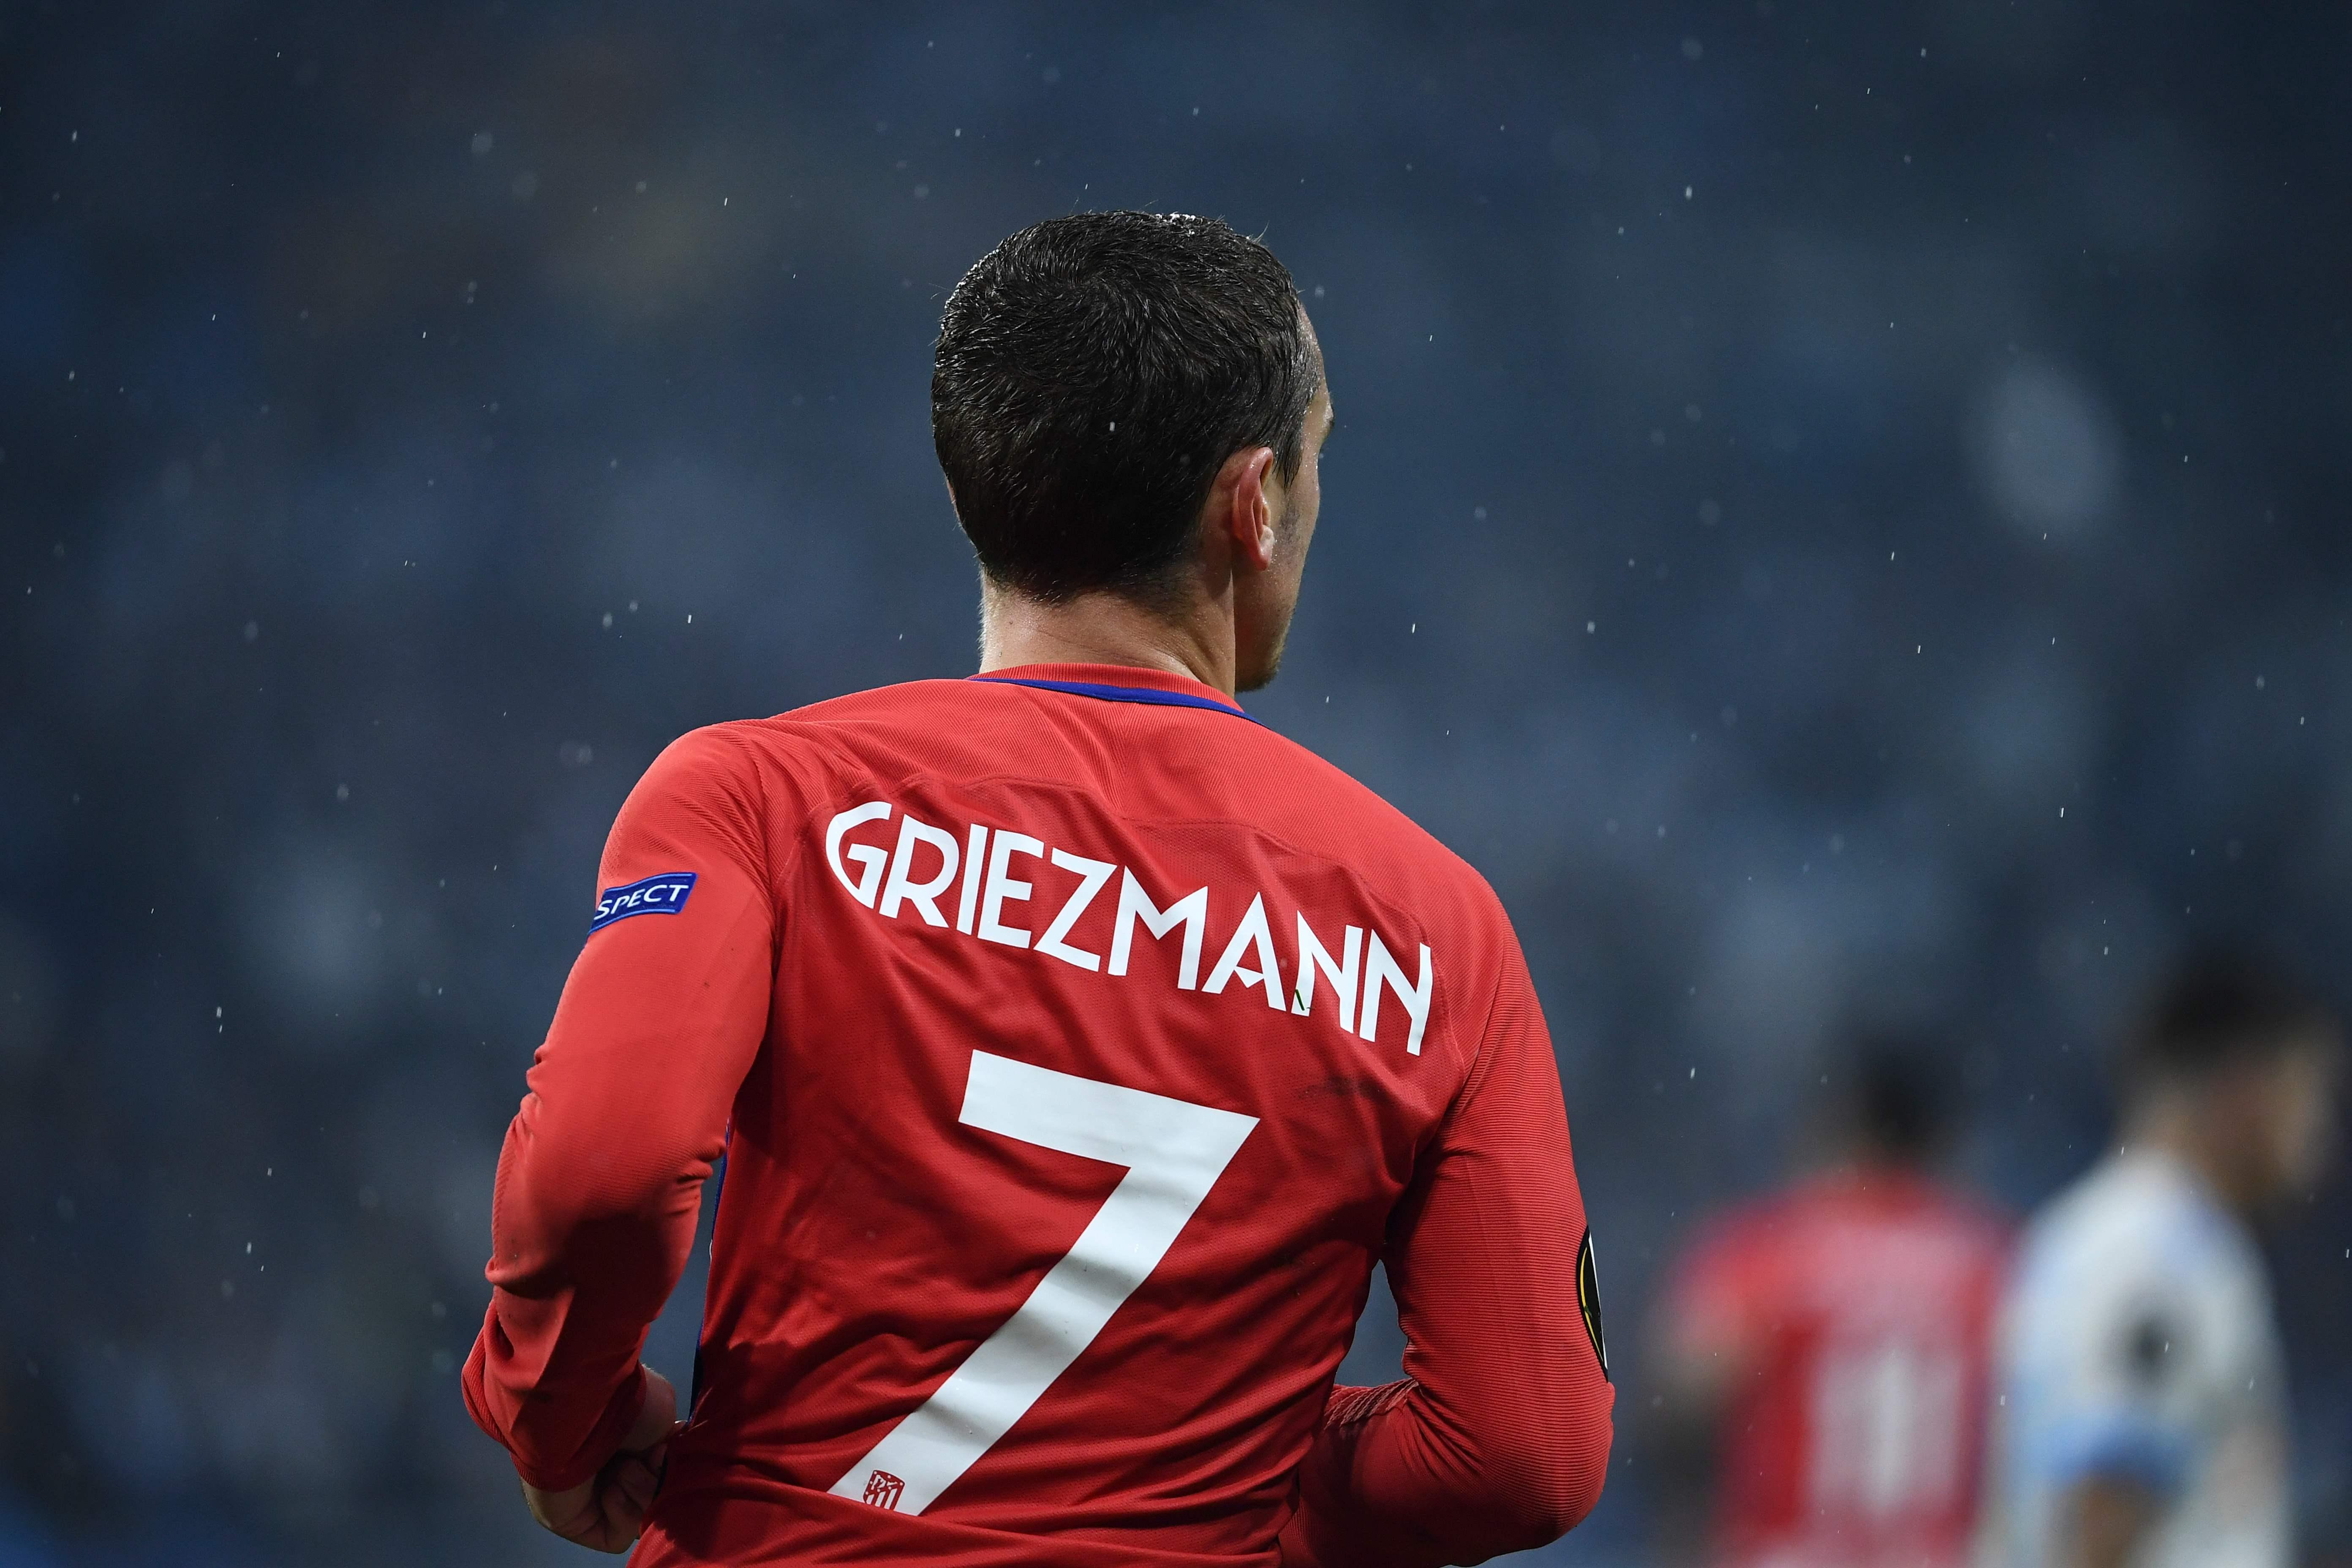 Griezmann wears the No 7 jersey to honour his idol Becks